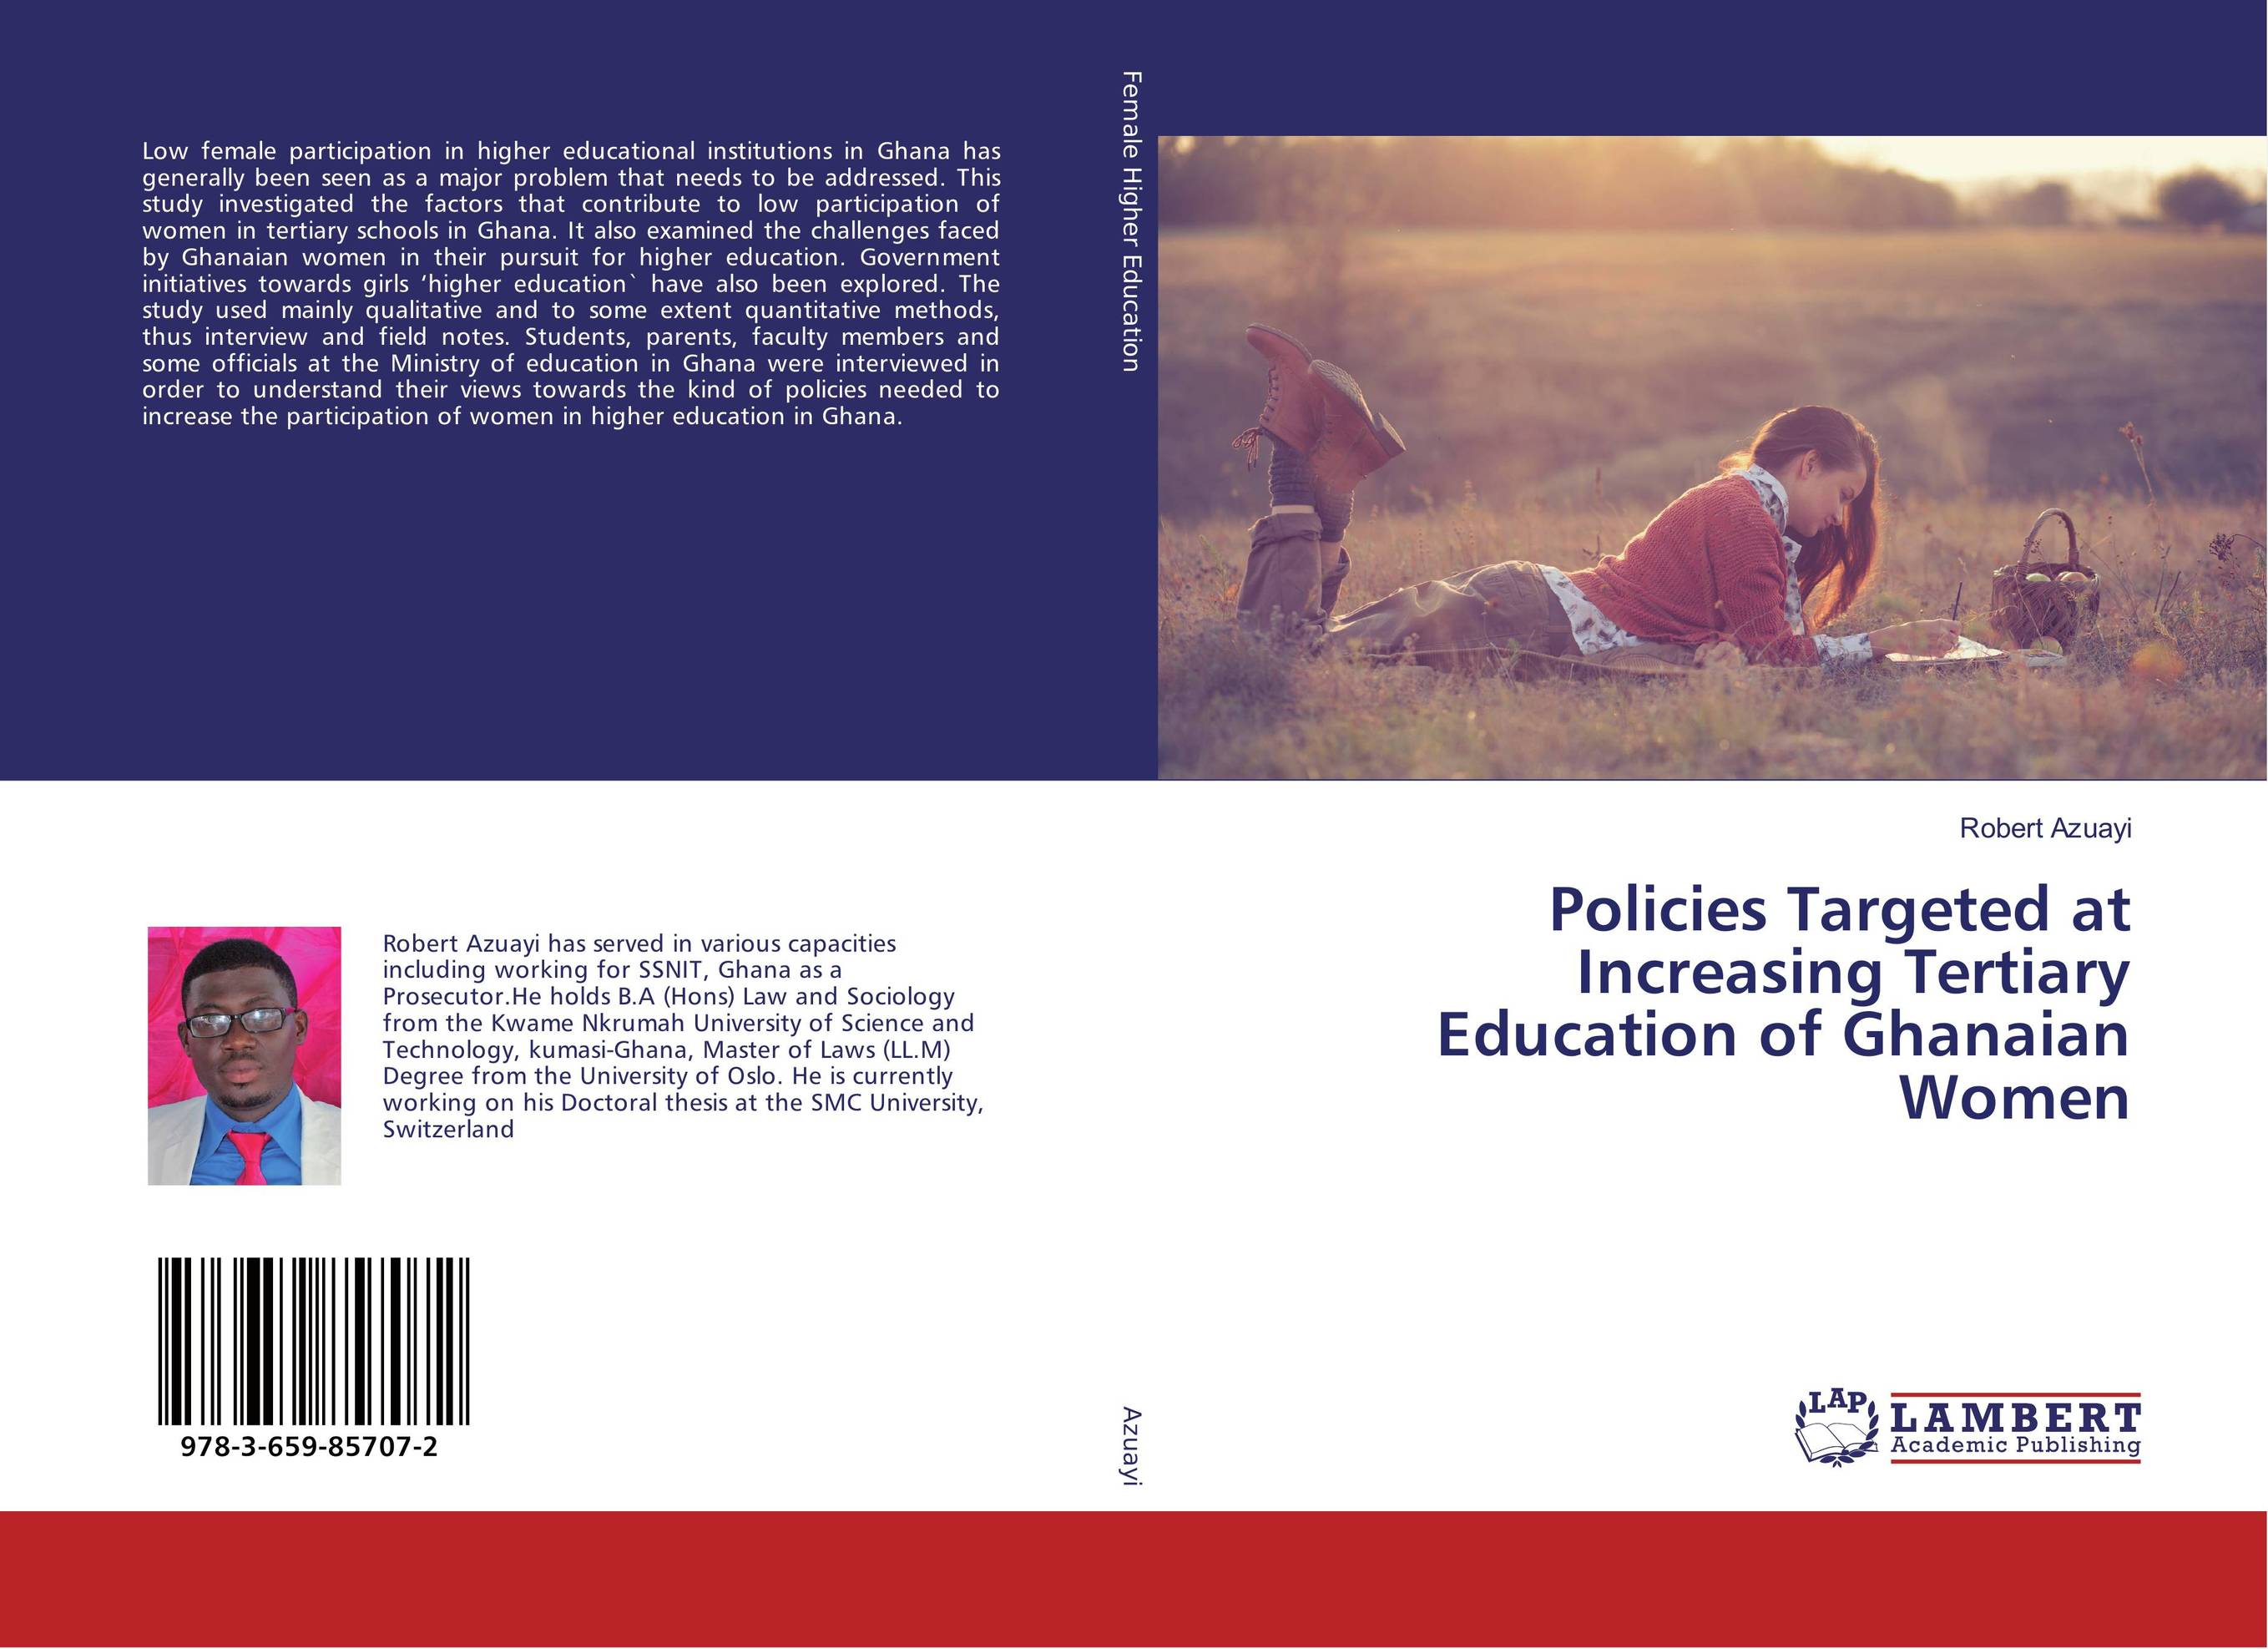 Policies Targeted at Increasing Tertiary Education of Ghanaian Women management of special schools in ghana